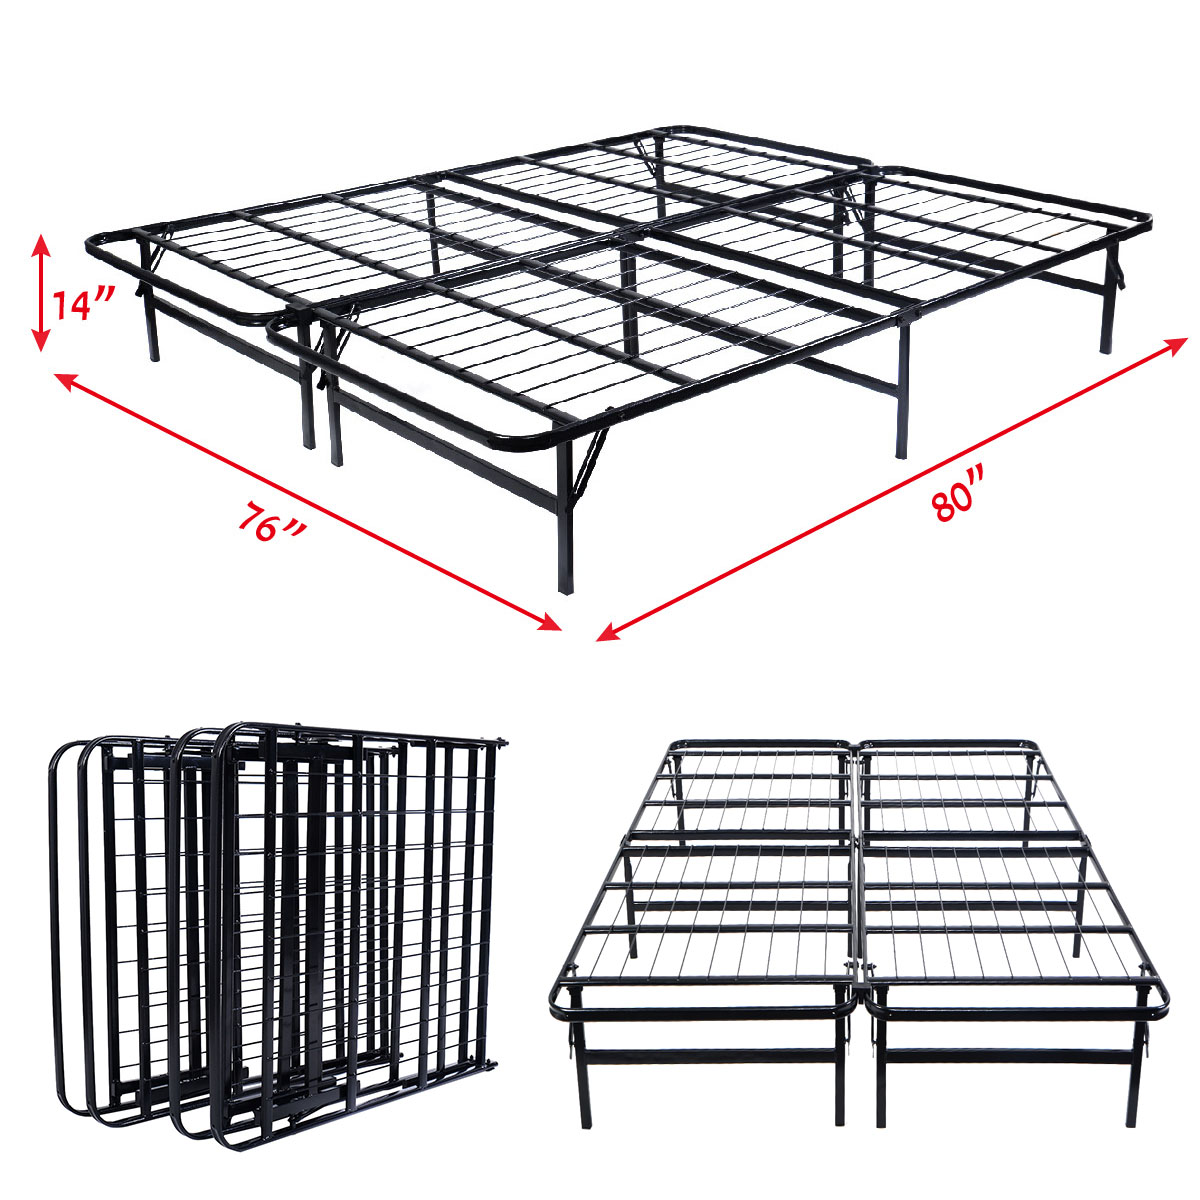 Costway Platform Metal Bed Frame Mattress Foundation 5 Size Box Springs (Queen Size) by Costway